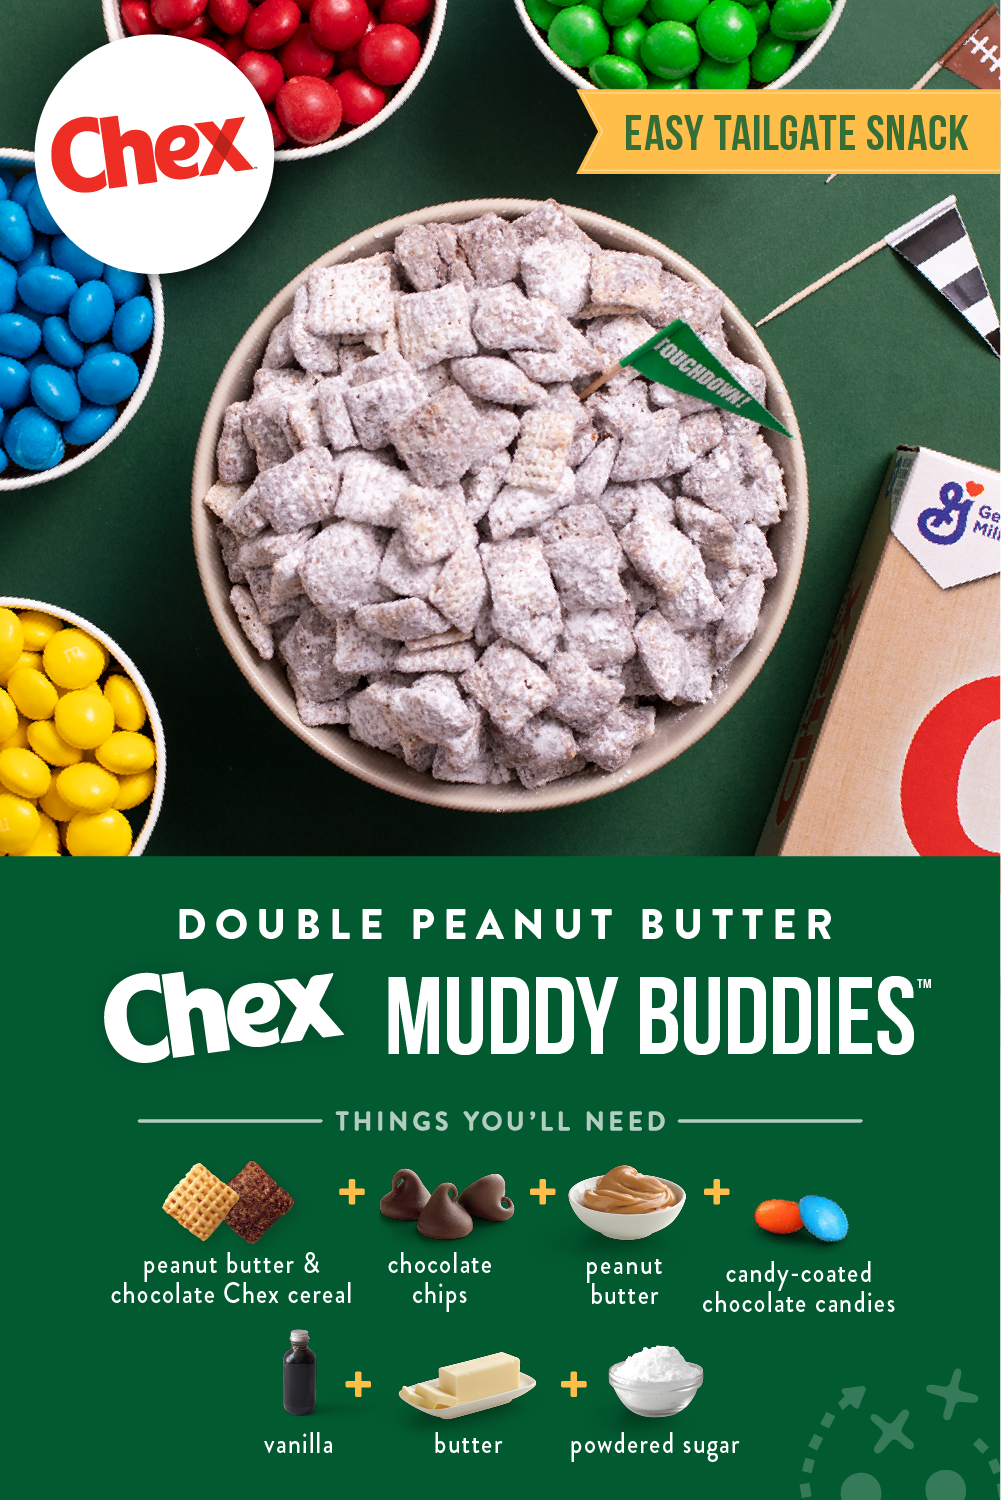 Double Peanut Butter Muddy Buddies Recipe In 2020 Snack Mix Recipes Sweet Snacks Chex Mix Recipes